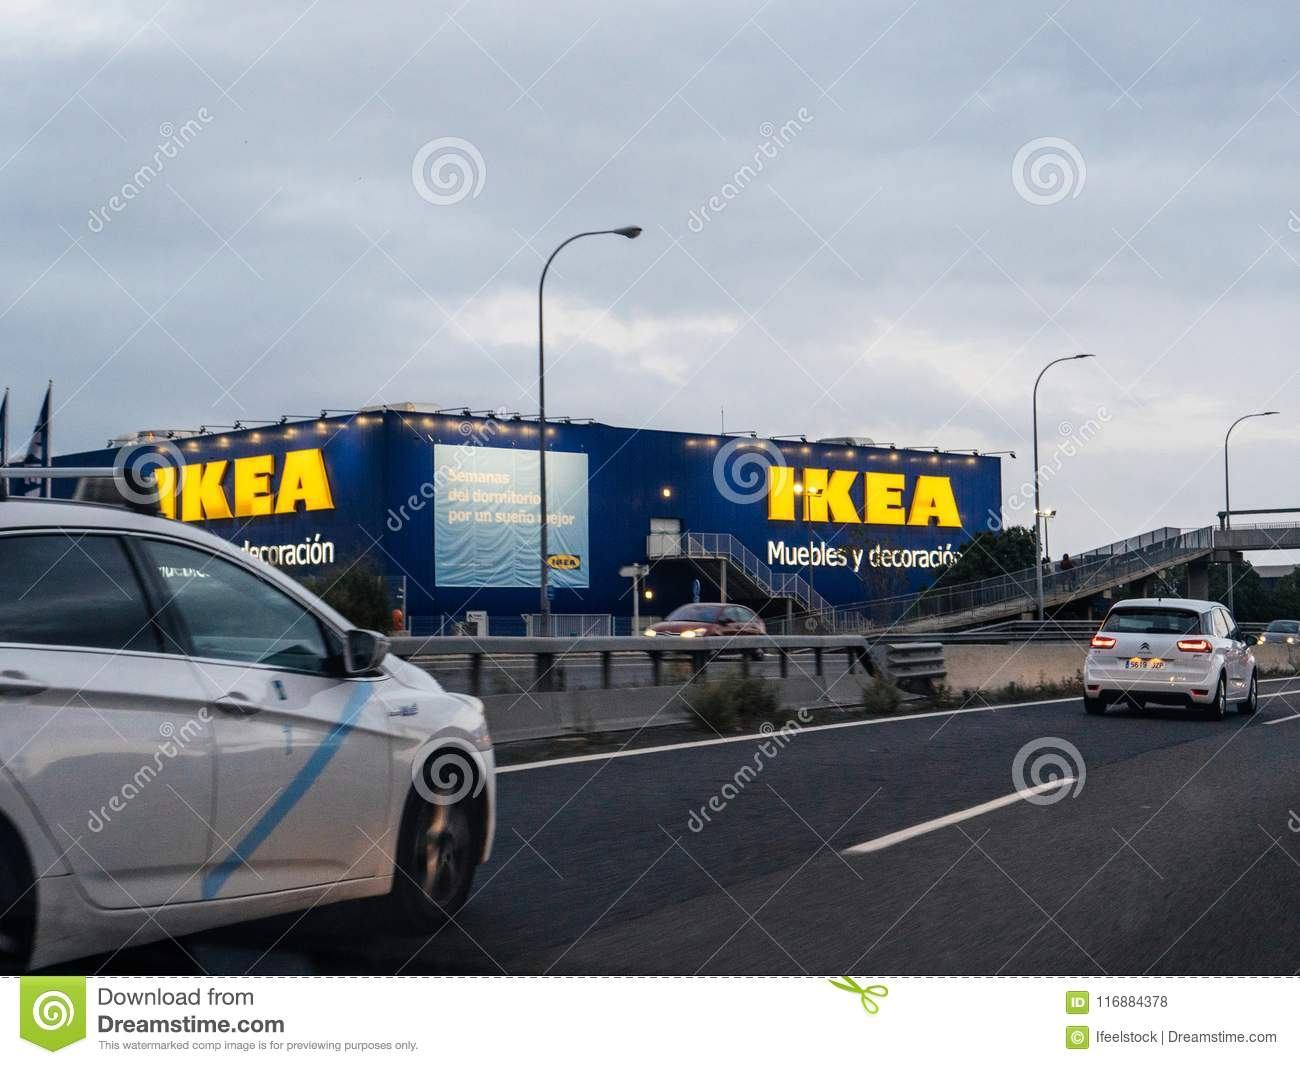 Ikea In Palma De Mallorca Spain With Cars Highway Editorial Stock